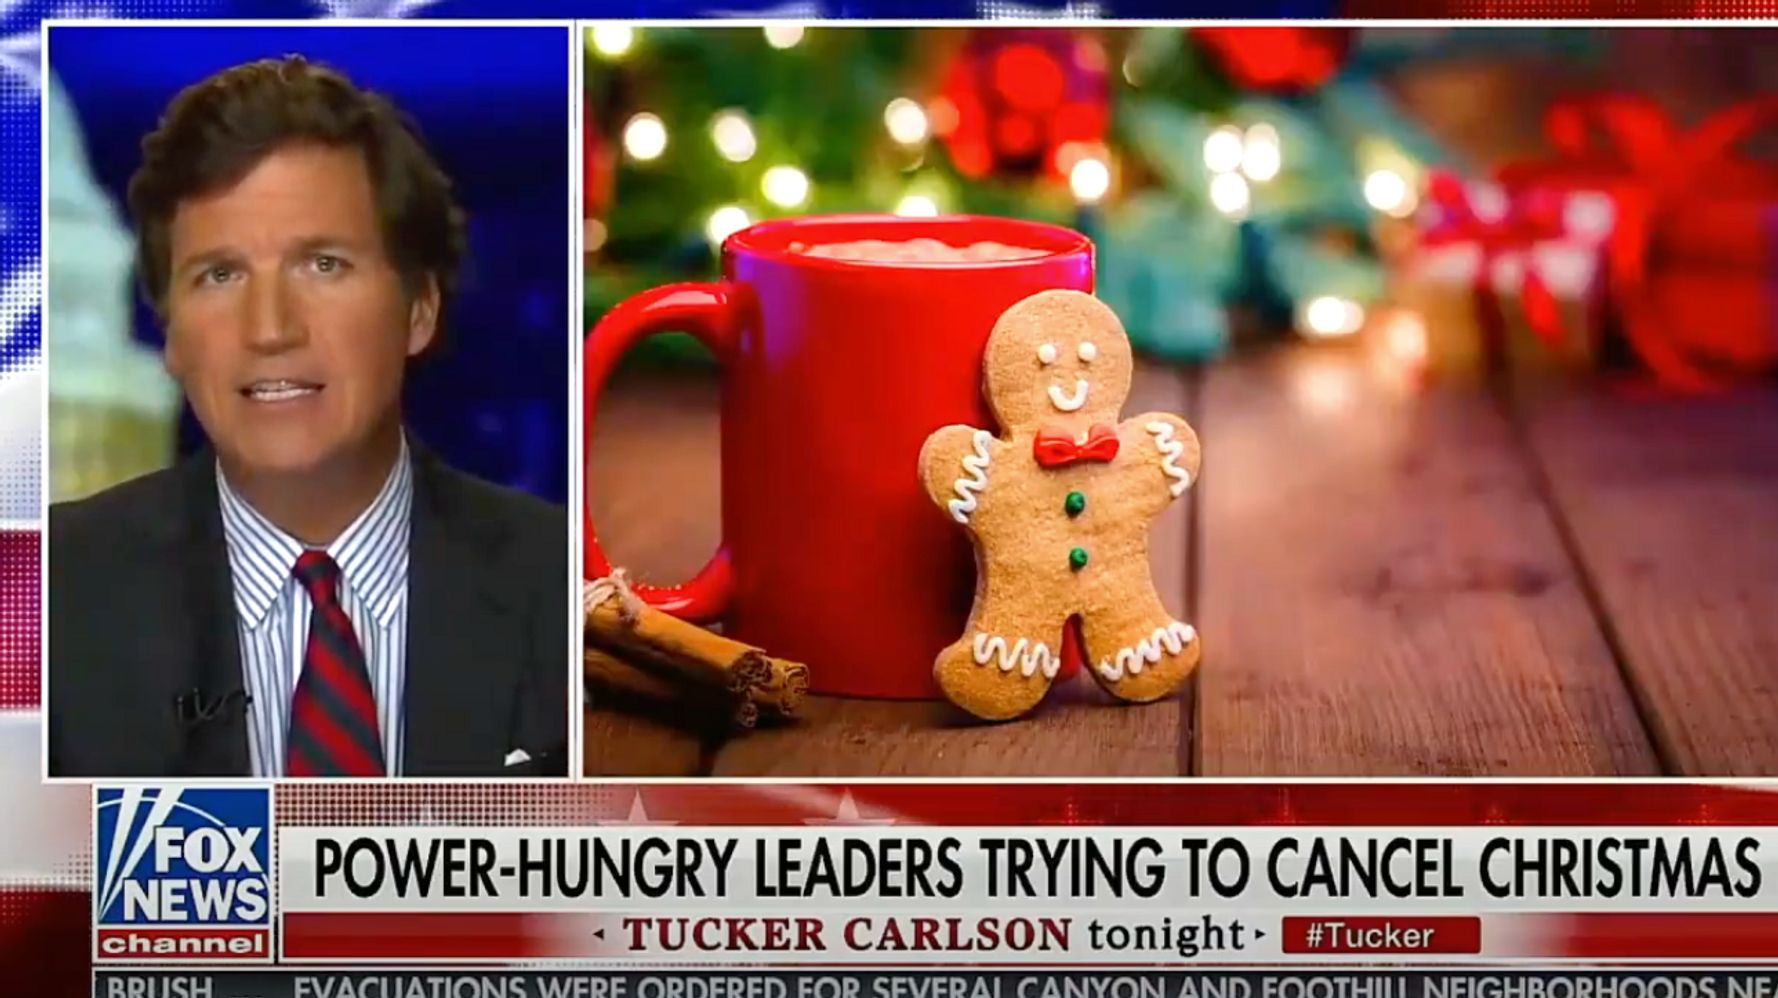 It's That Time Of Year: Fox News' 'War On Christmas' Gets A Pandemic Twist